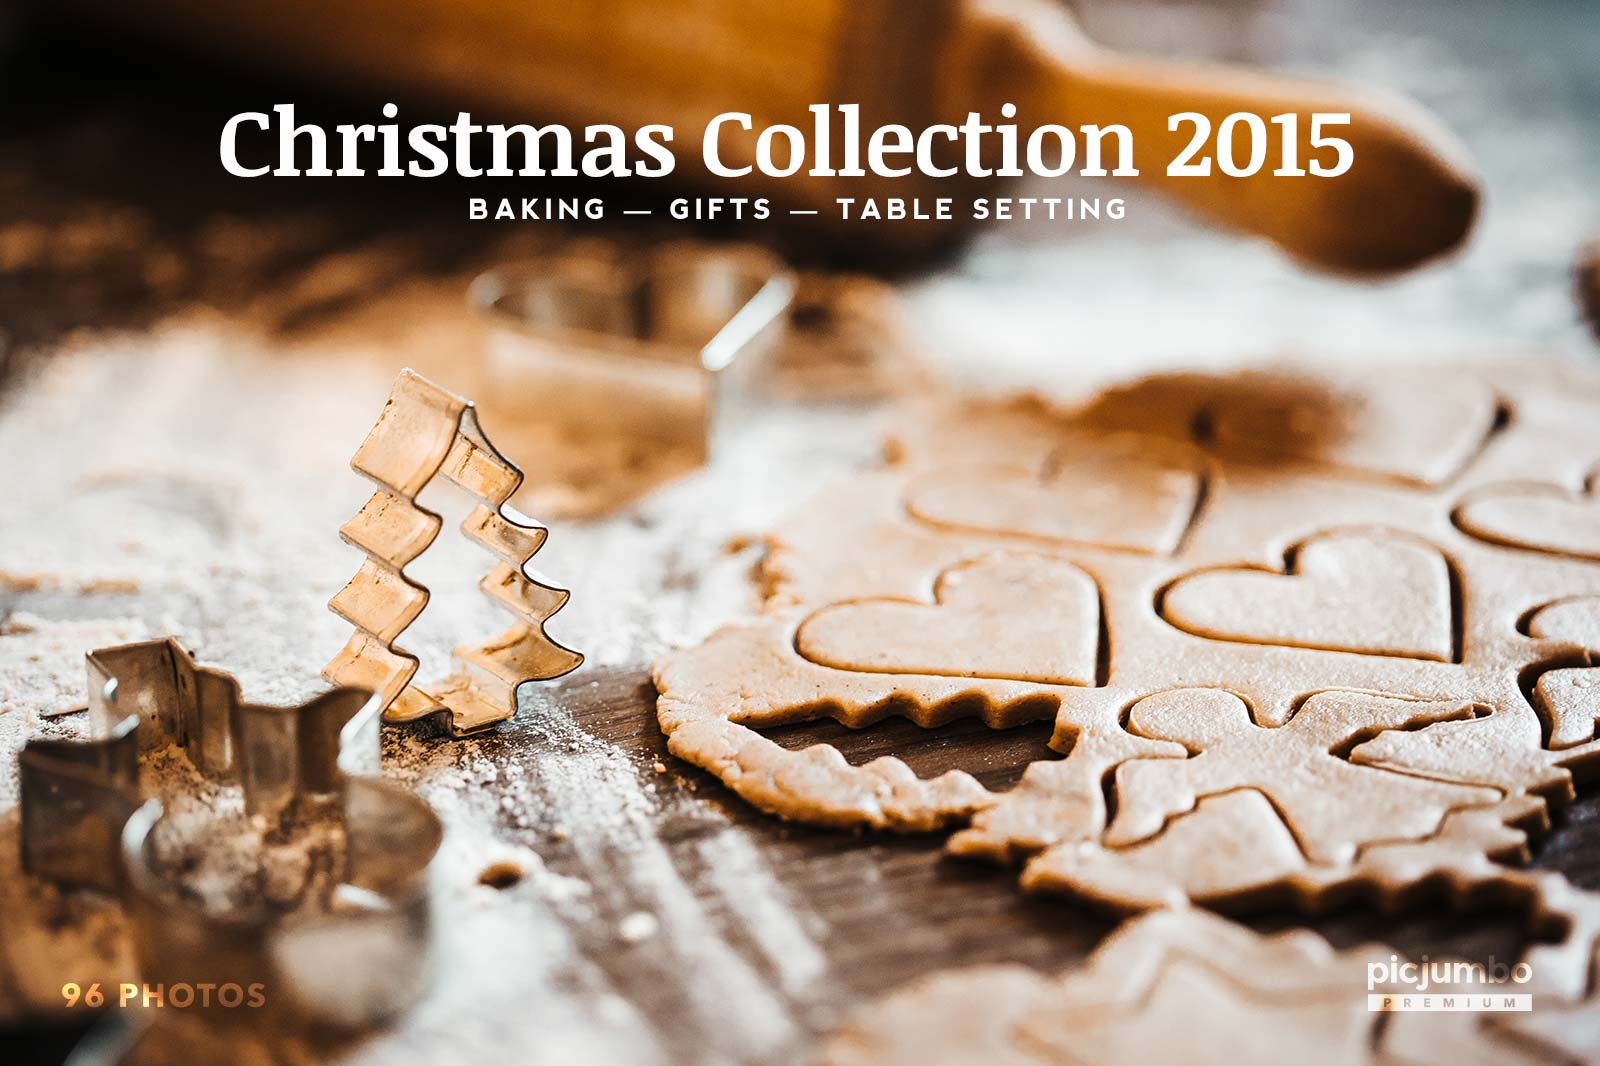 Christmas Collection 2015